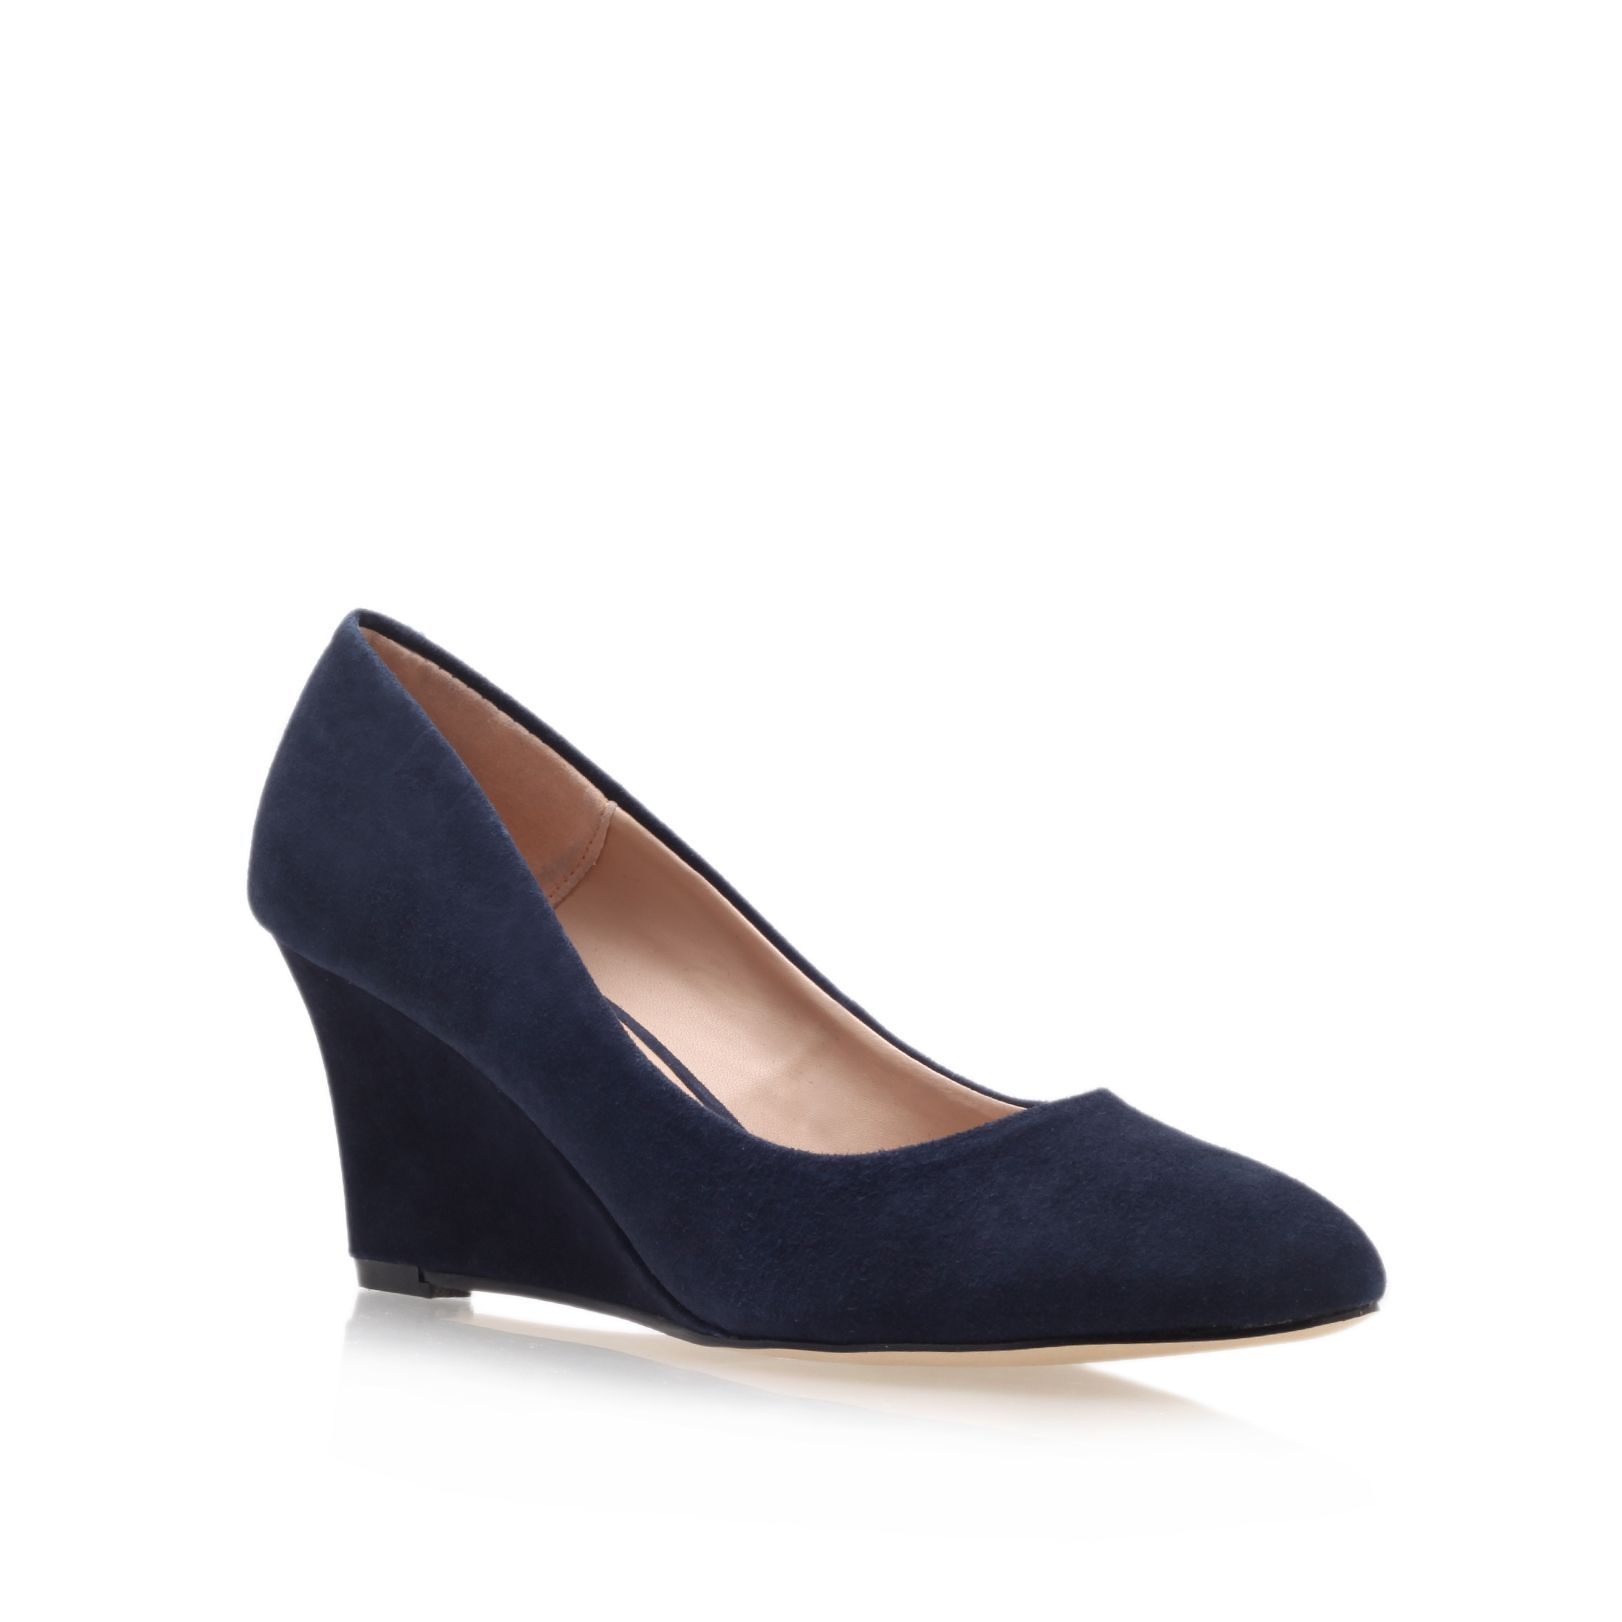 Carvela kurt geiger Krissy Mid Heel Wedge Court Shoes in Blue | Lyst